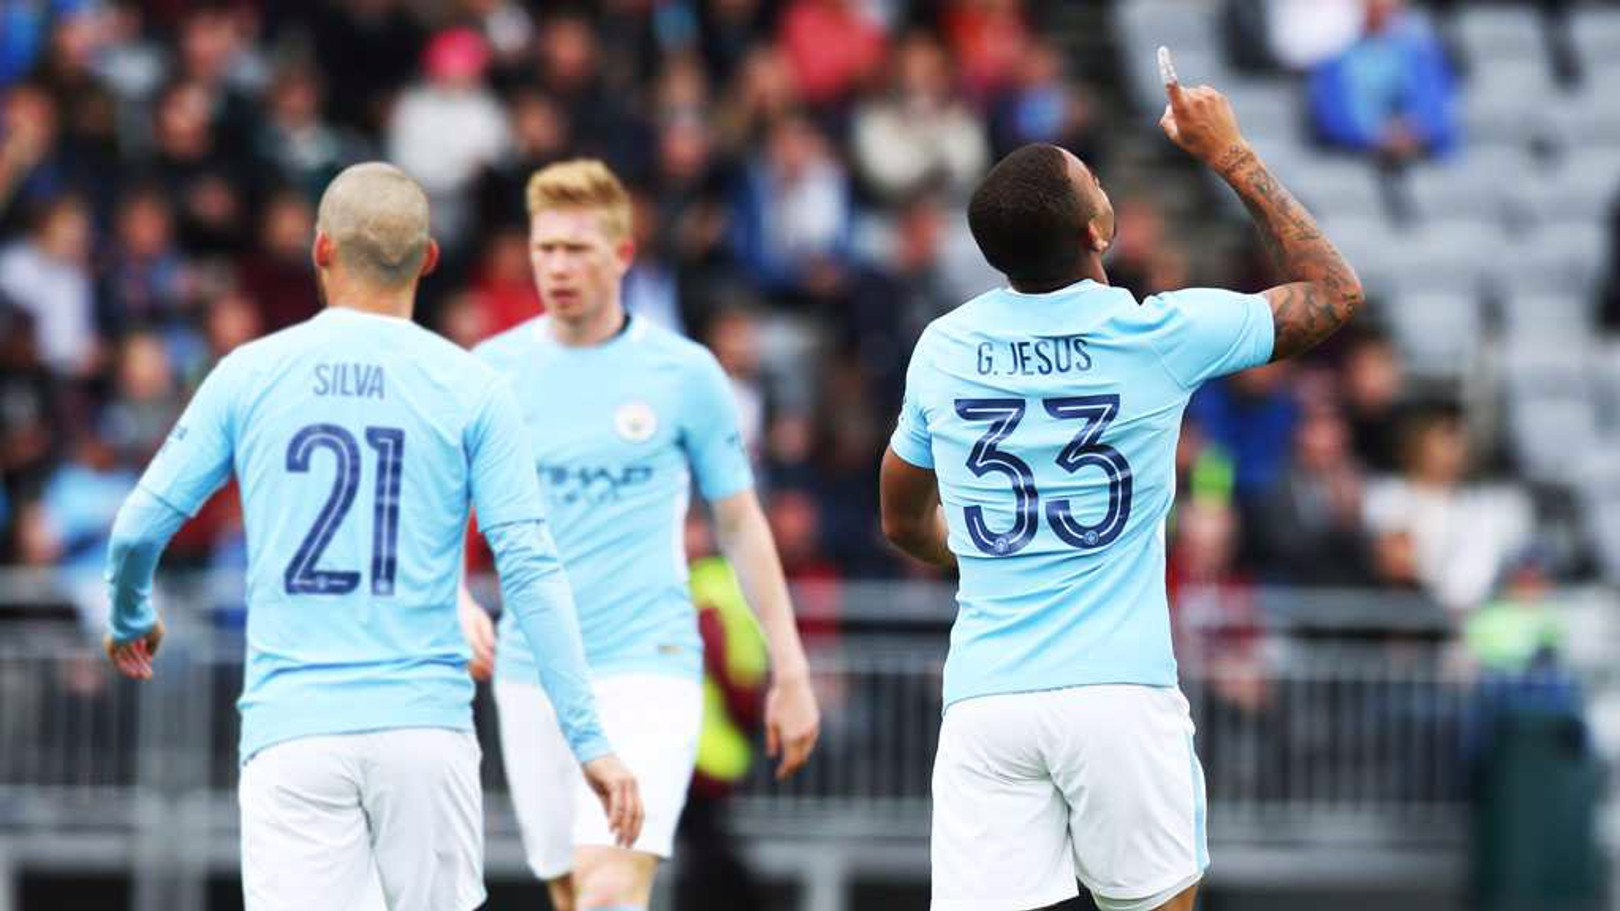 Gabriel Jesus célèbre son but contre West Ham.